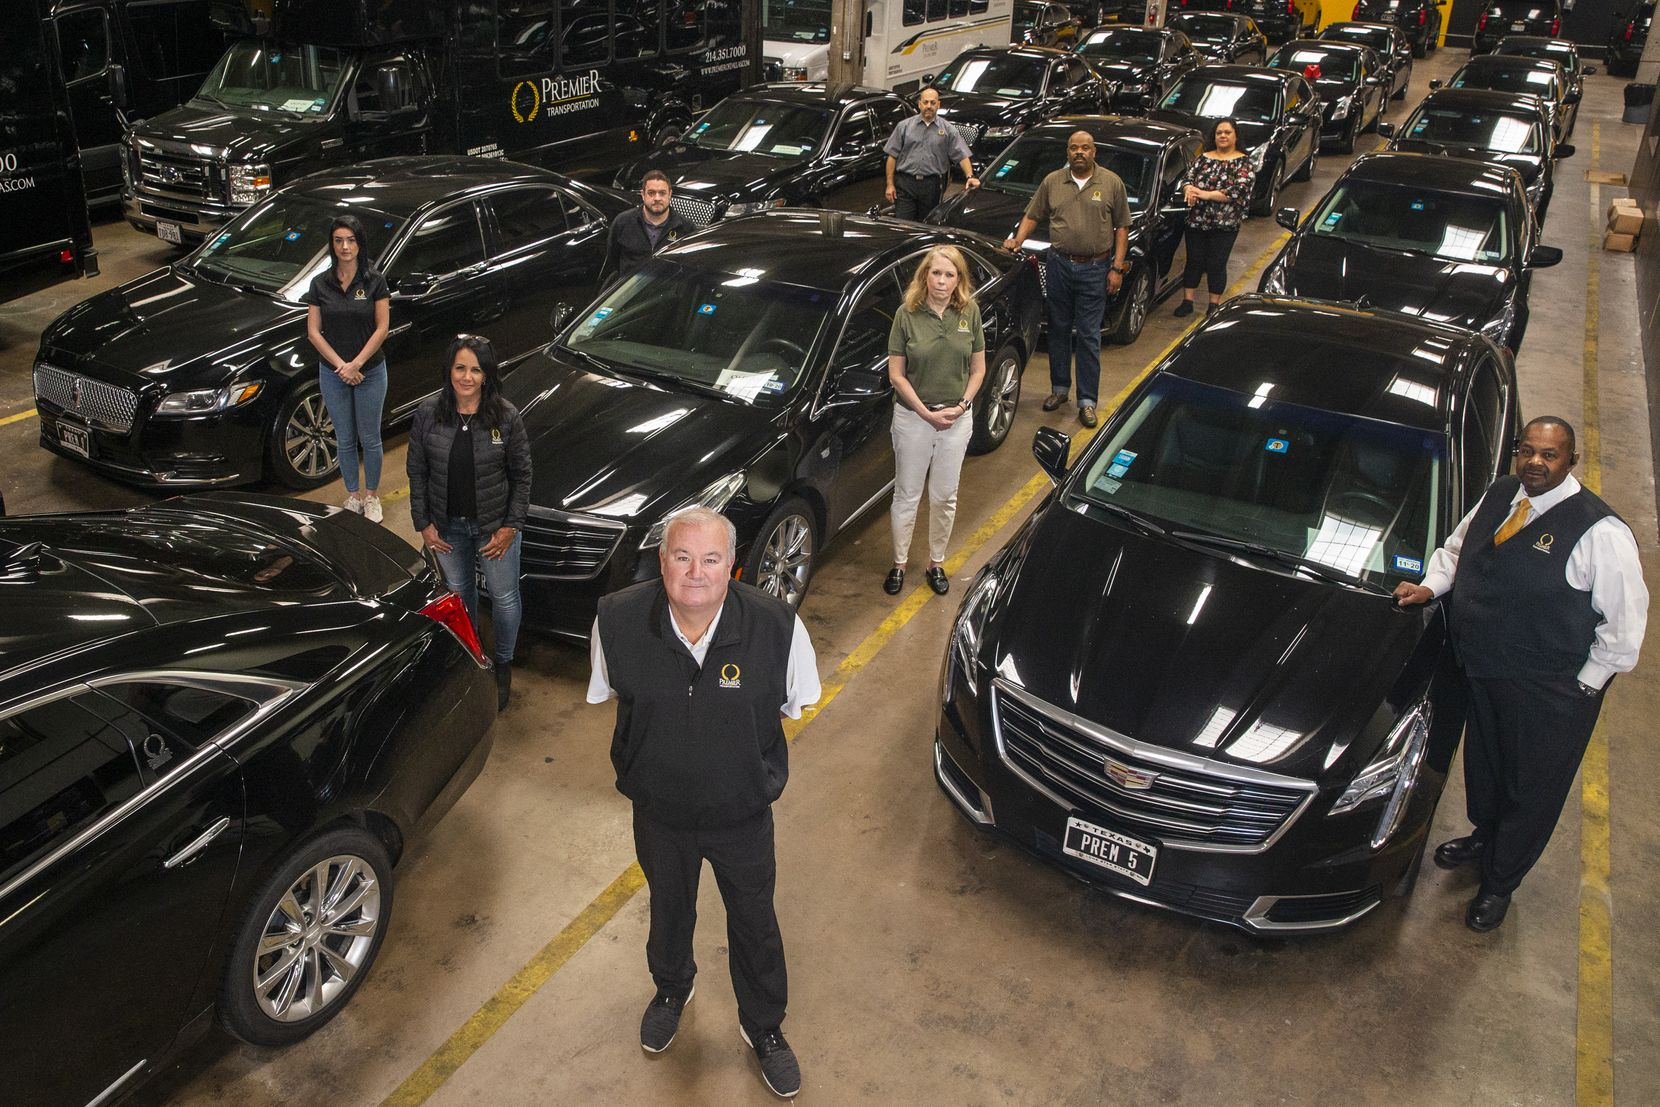 Premier Transportation owner Eric Devlin (center) and his employees pose at the company's headquarters in Dallas.